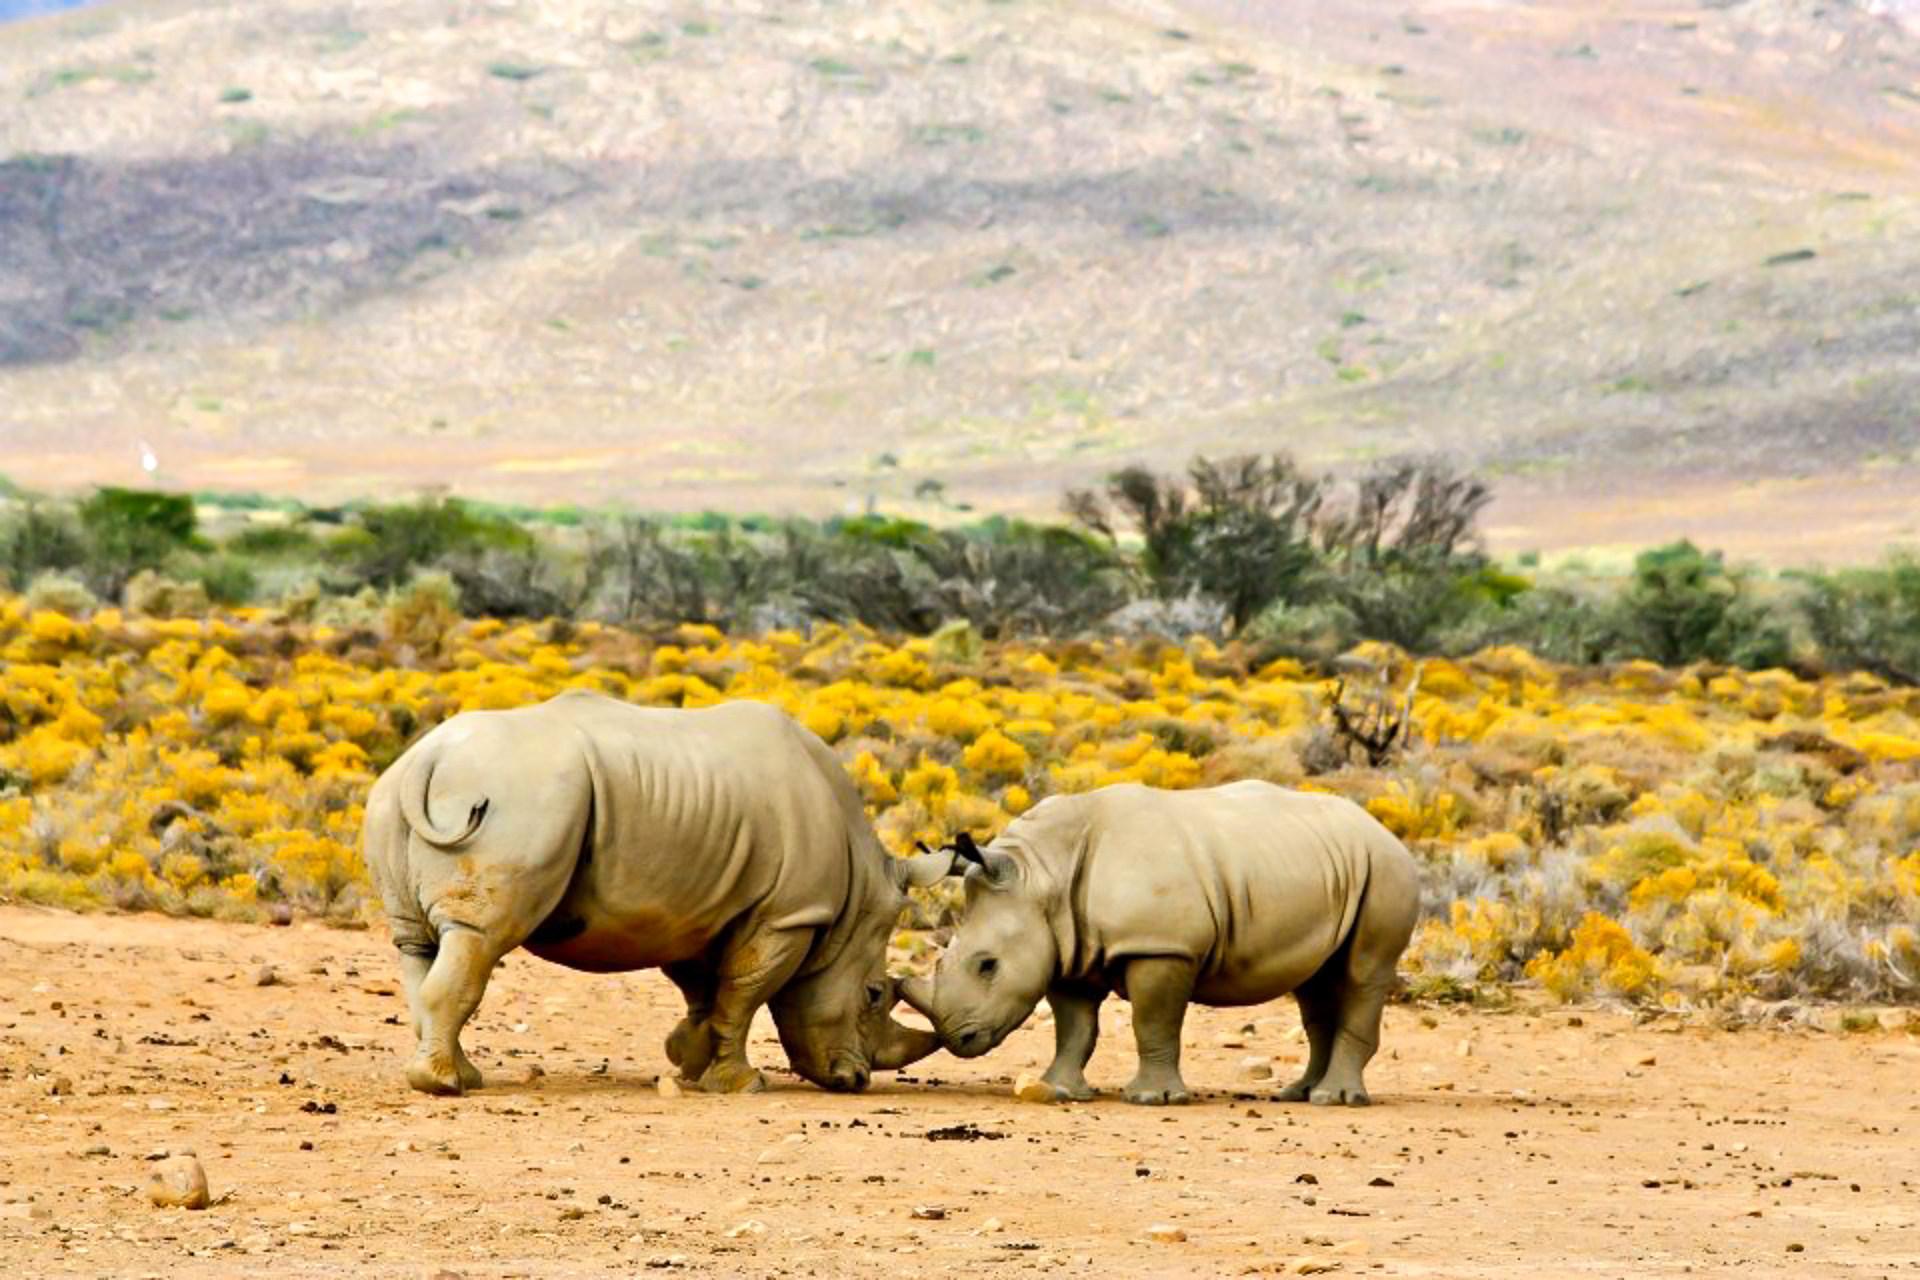 25 Images to Inspire You to go on a Safari in South Africa - Sunny Coastlines Blog